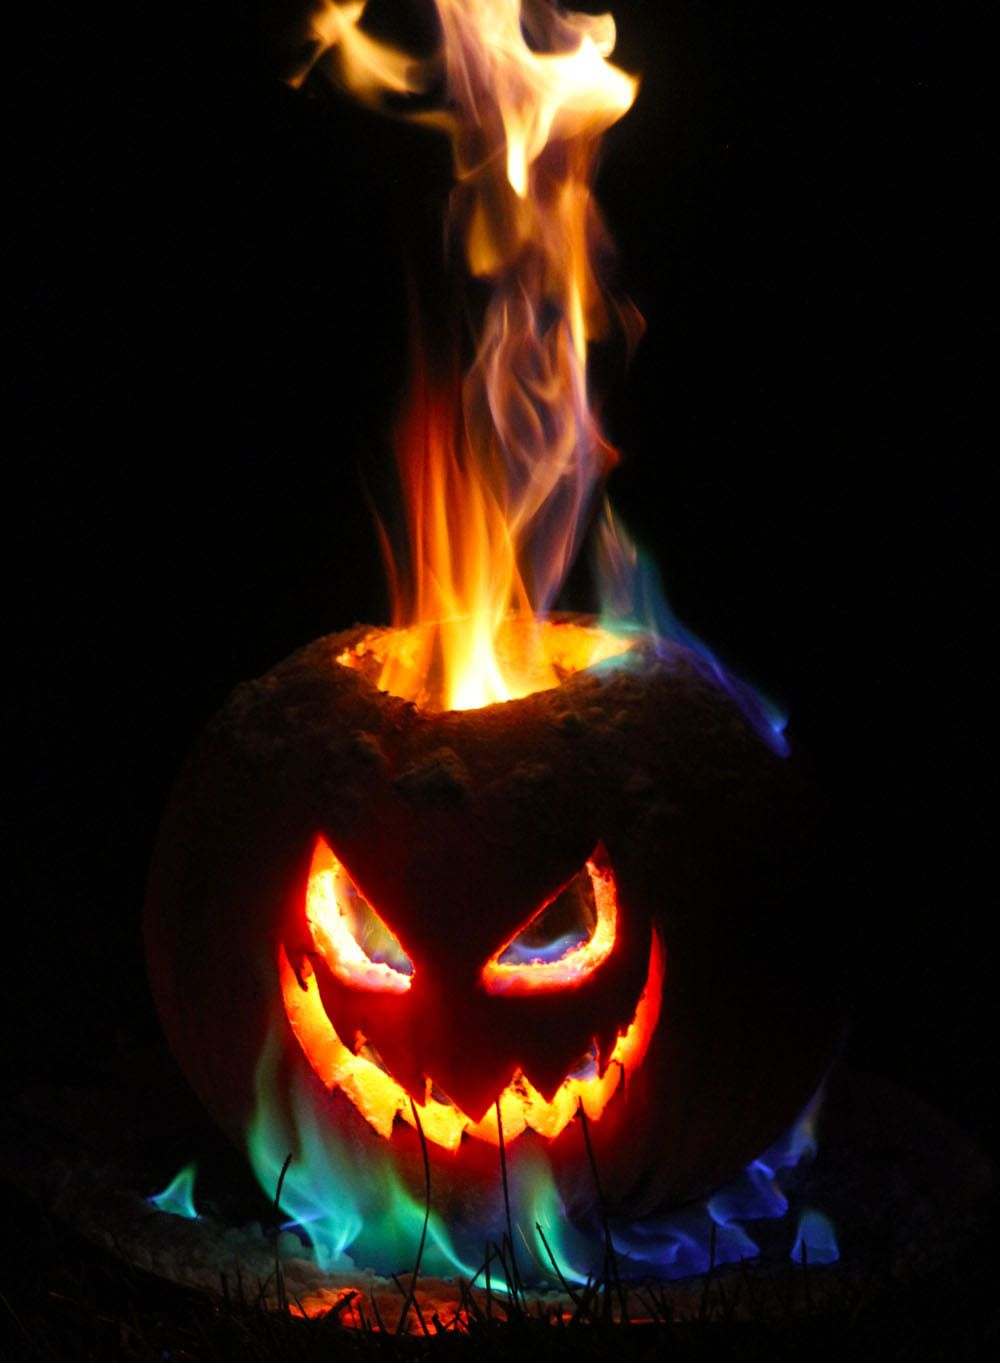 decoration halloween fait maison 2 2-3 foot tall flames that last for hours - super easy to do!!! for the  middle of the fire pit